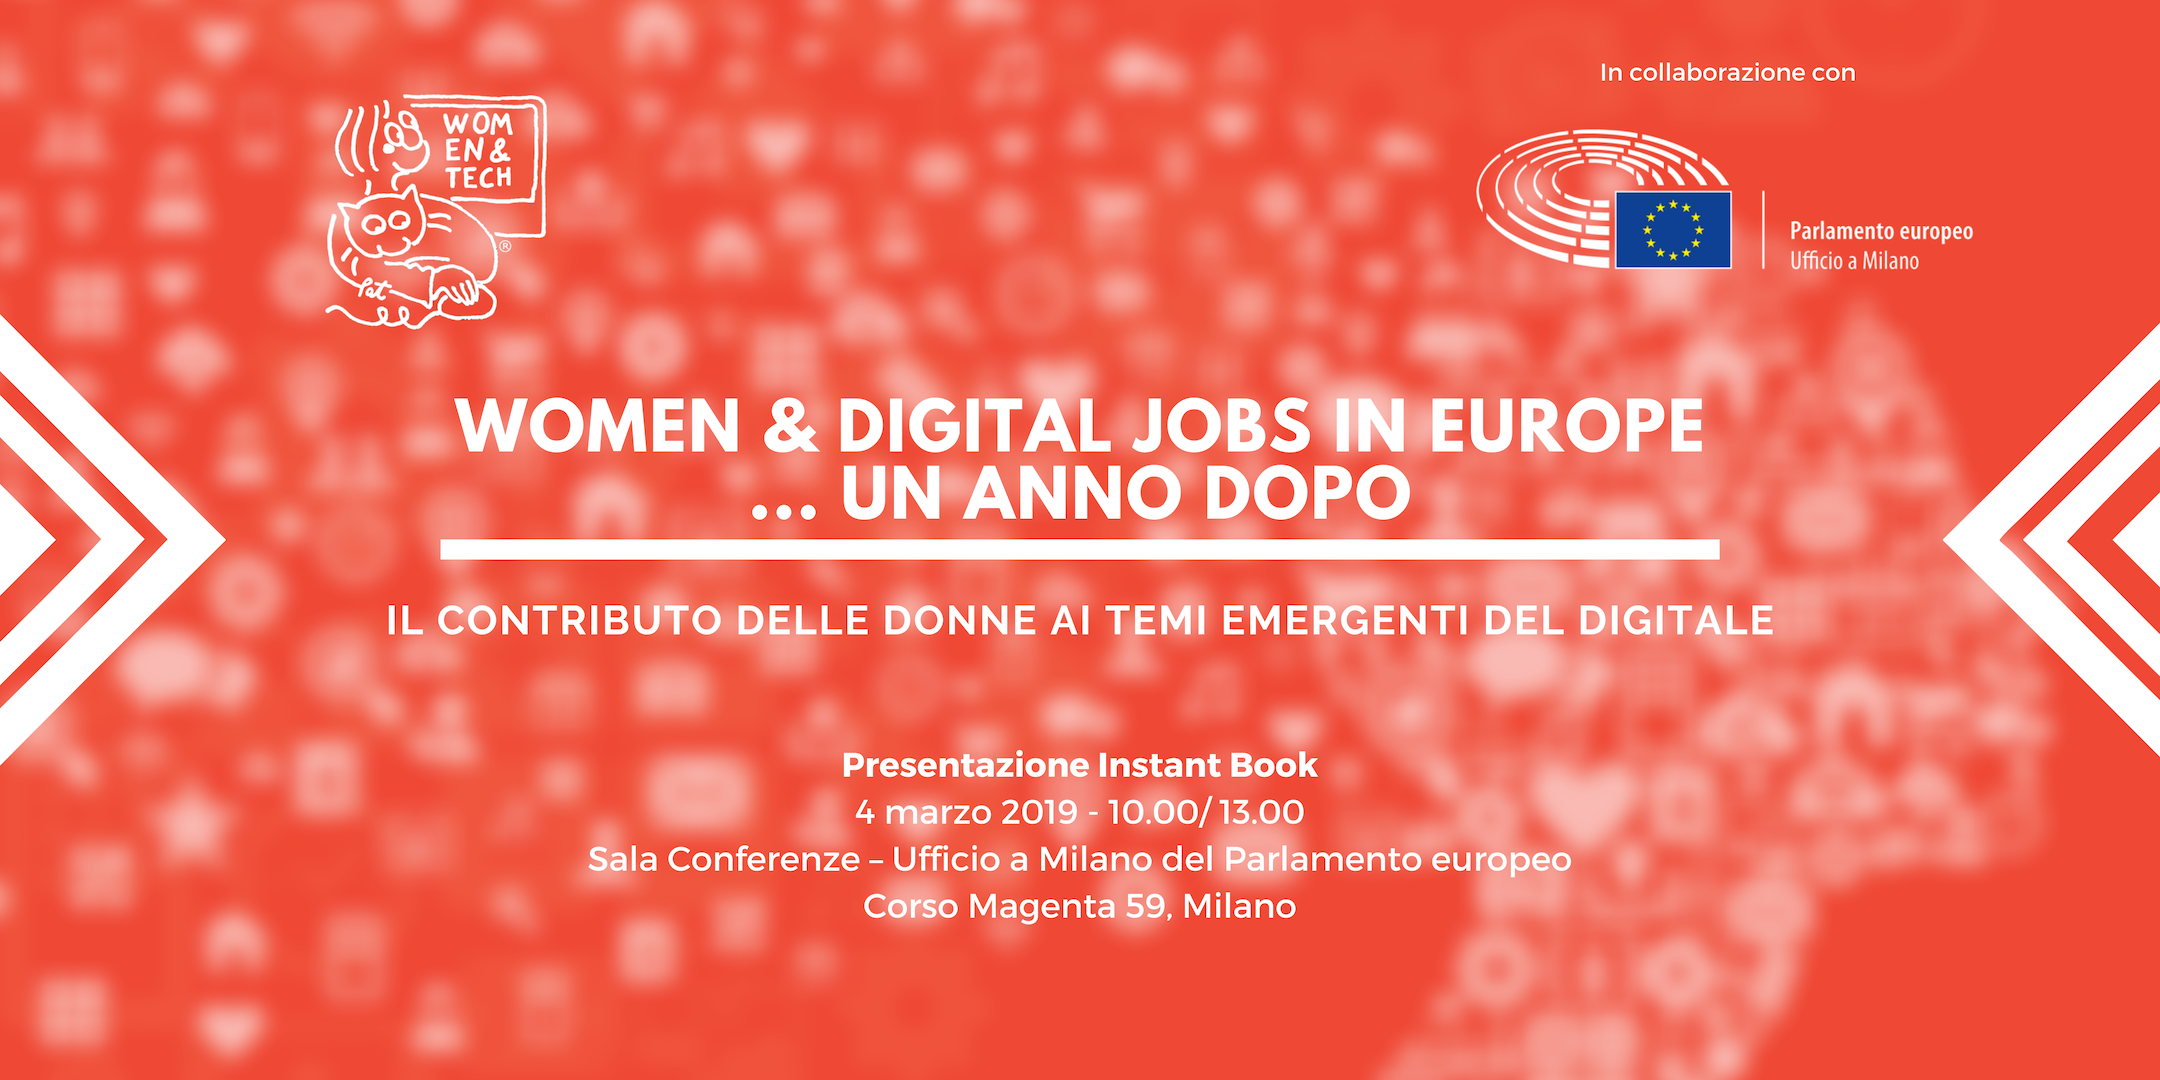 Women & Digital Jobs in Europe - Presentazione Instant Book